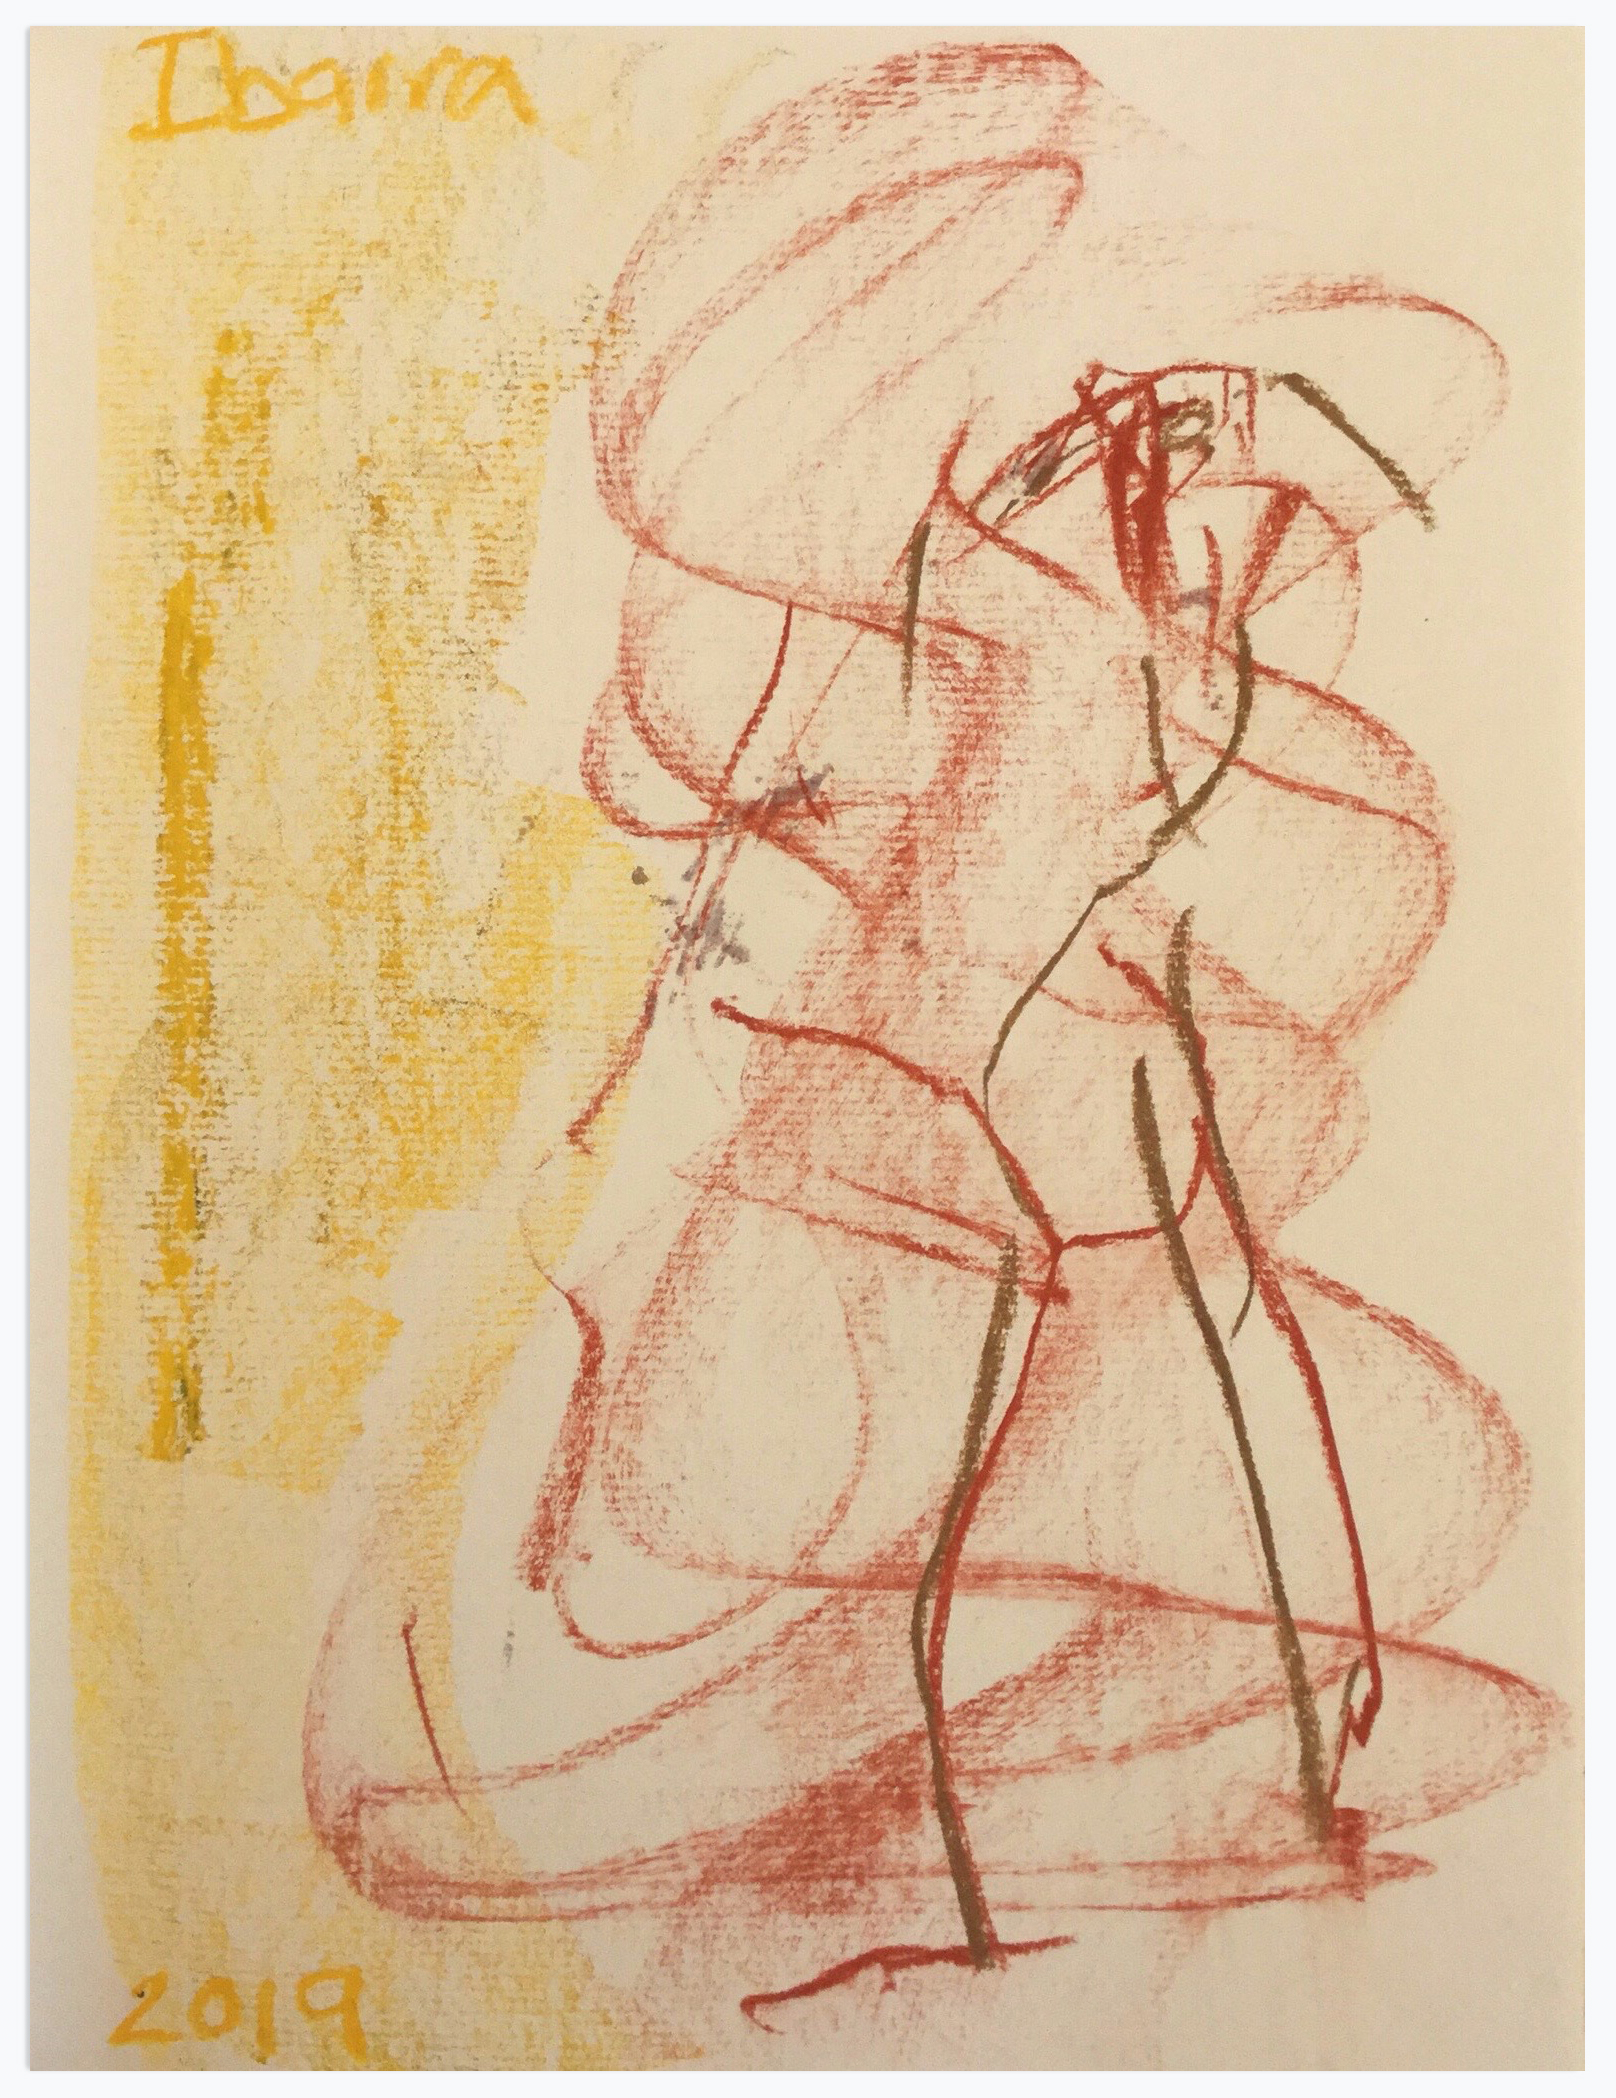 Ibarra_Untitled Figure 2019 Pigment block and charcoal on paper-a